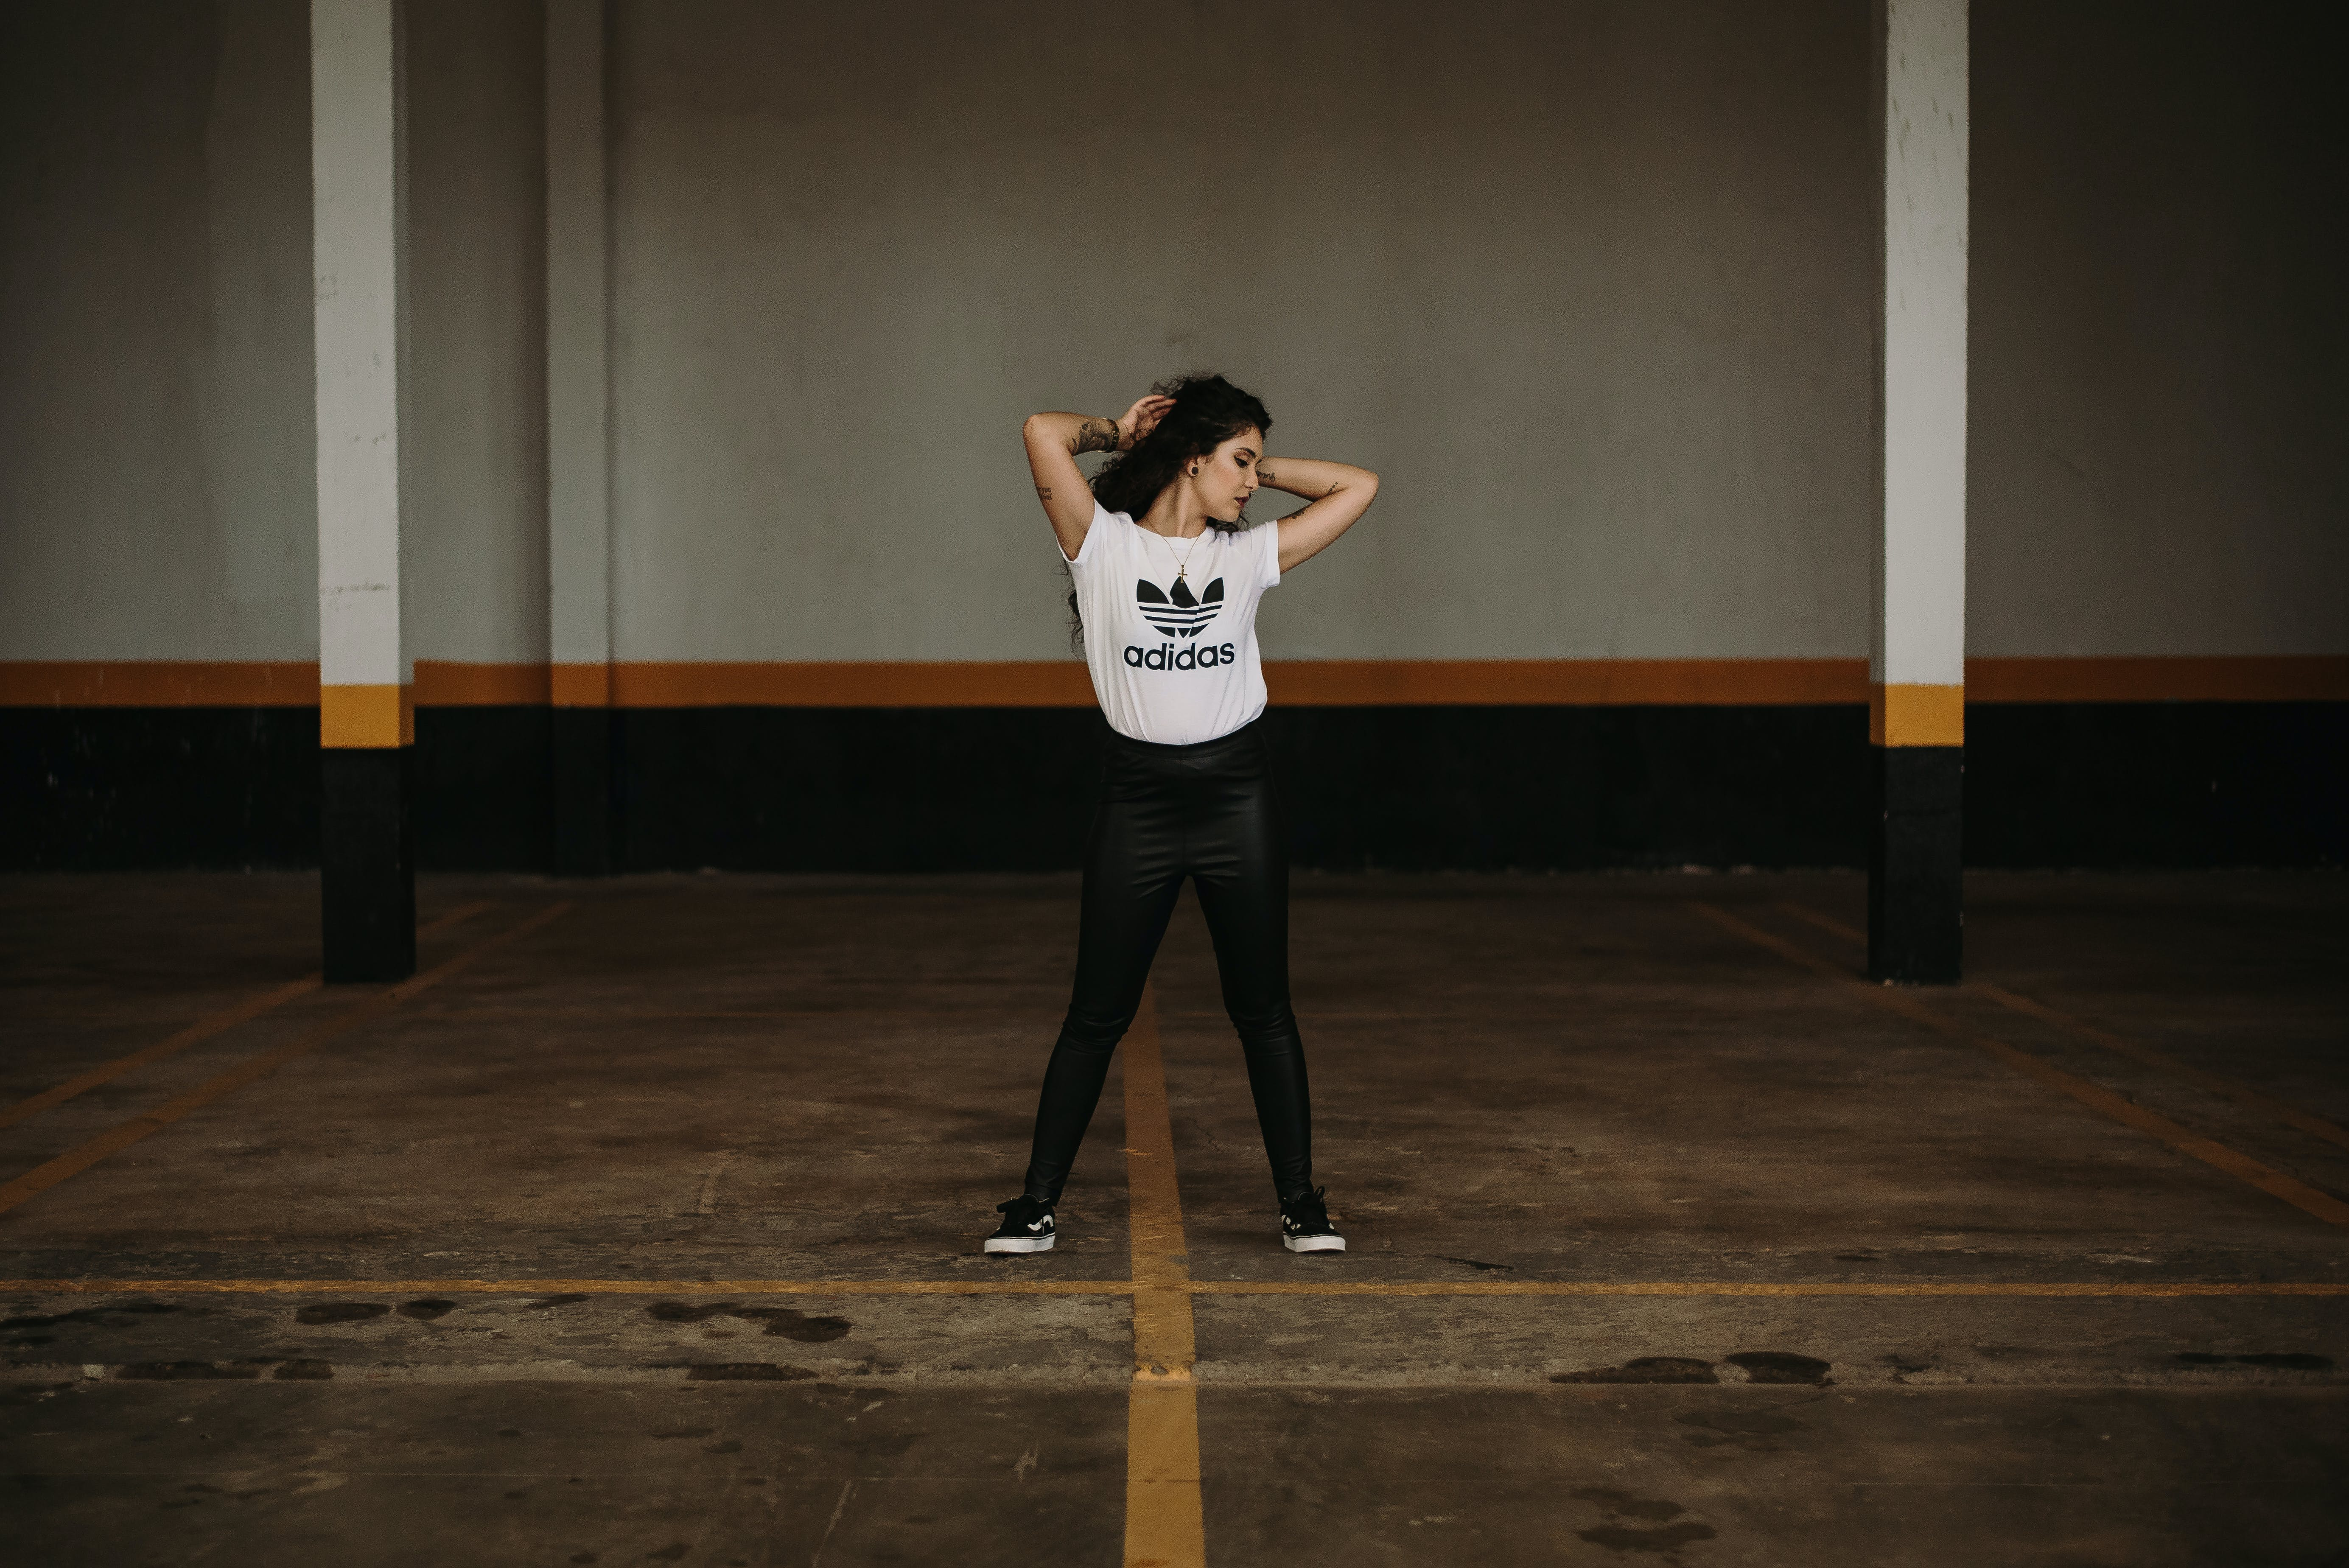 Photo of Woman in White Adidas Shirt Posing in the Middle of a Parking Lot